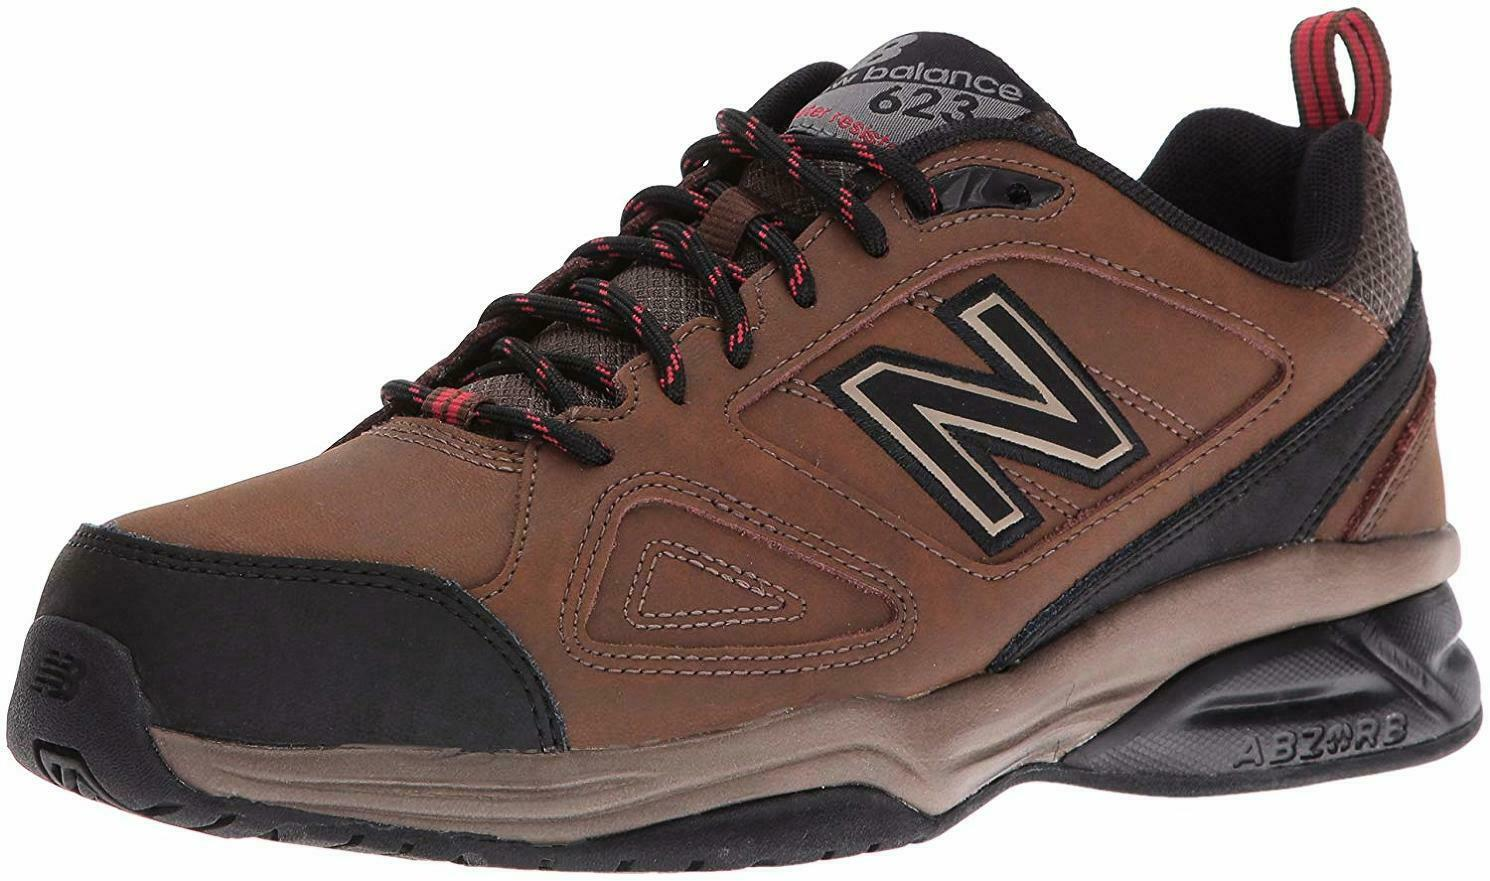 New Balance Men's MX623v3 Casual Comfort Training shoes - Choose SZ color